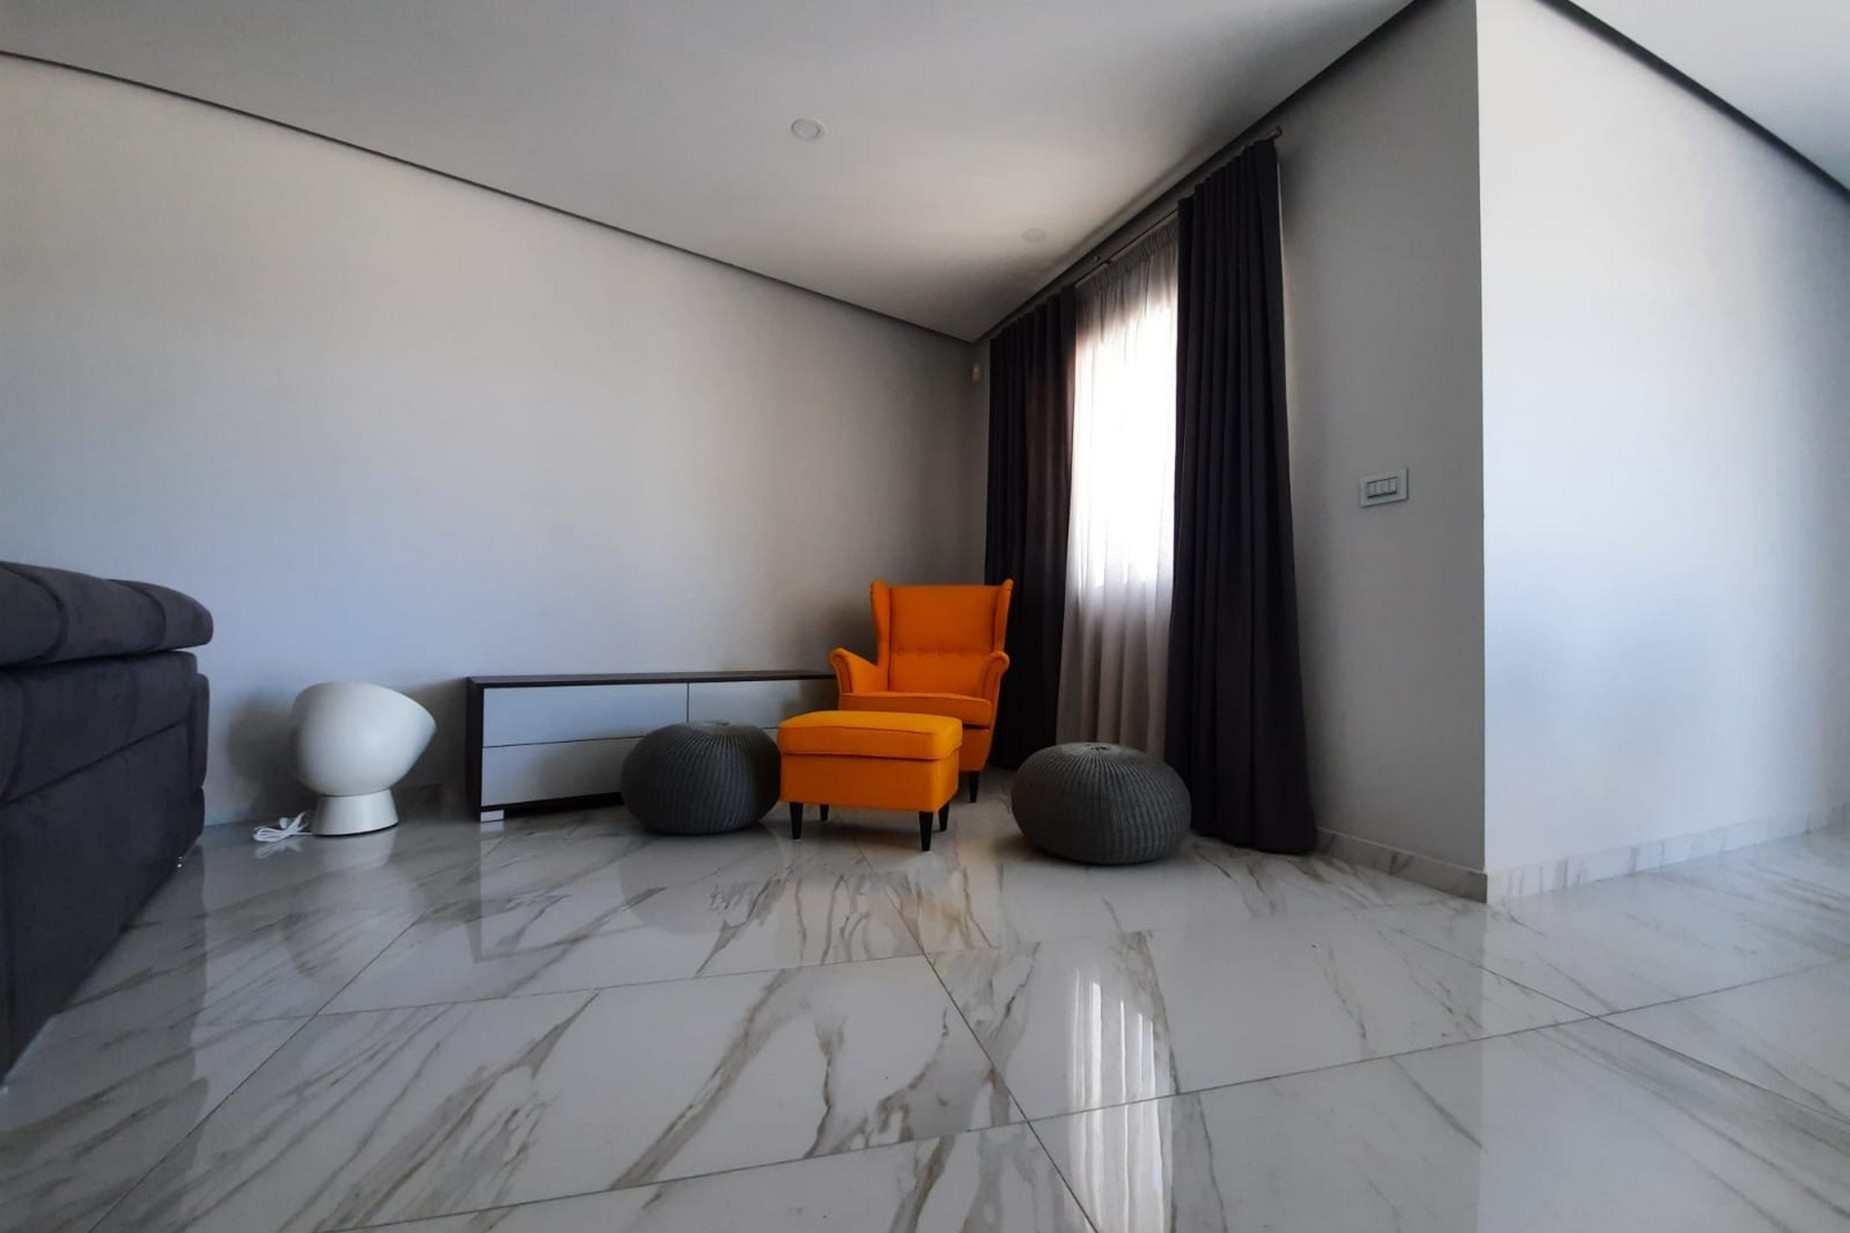 3 bed Penthouse For Rent in Rabat, Rabat - thumb 11